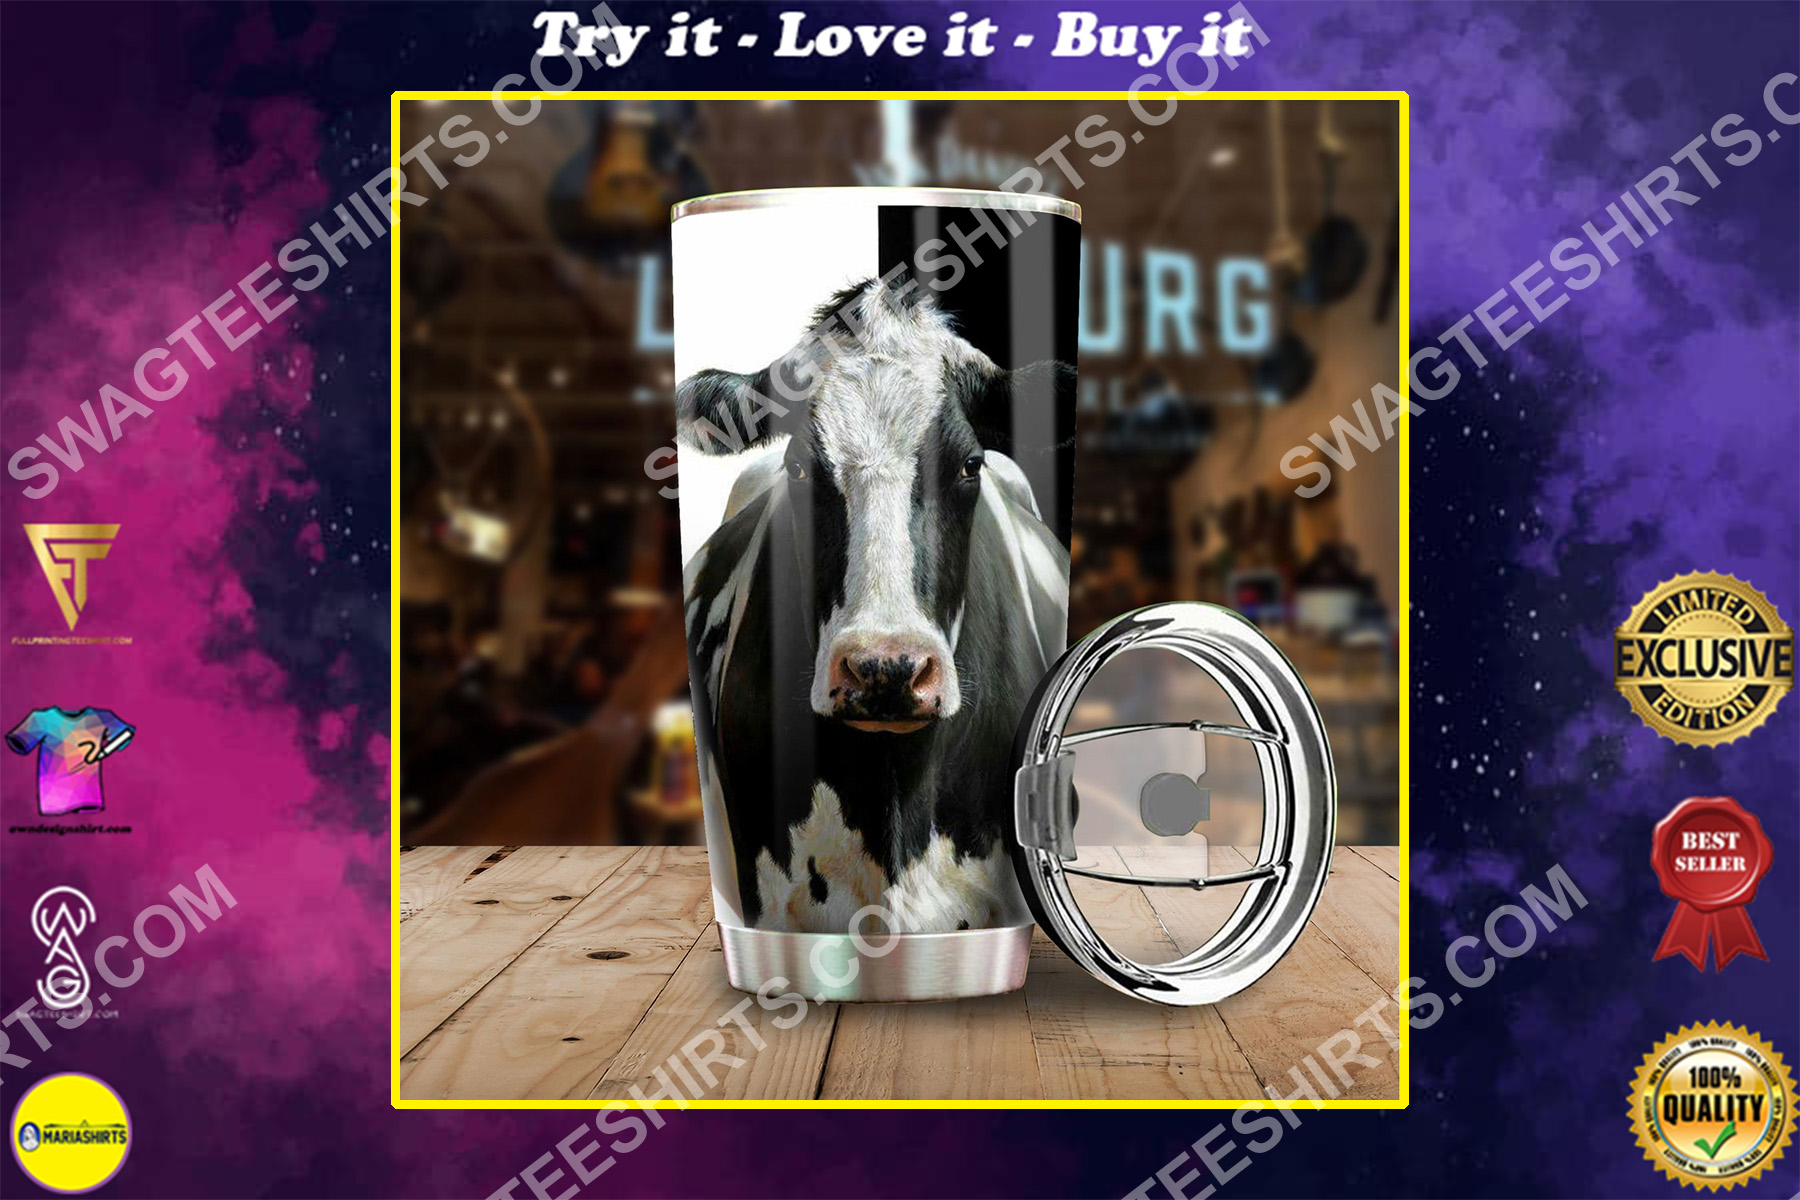 cow farm life all over printed stainless steel tumbler